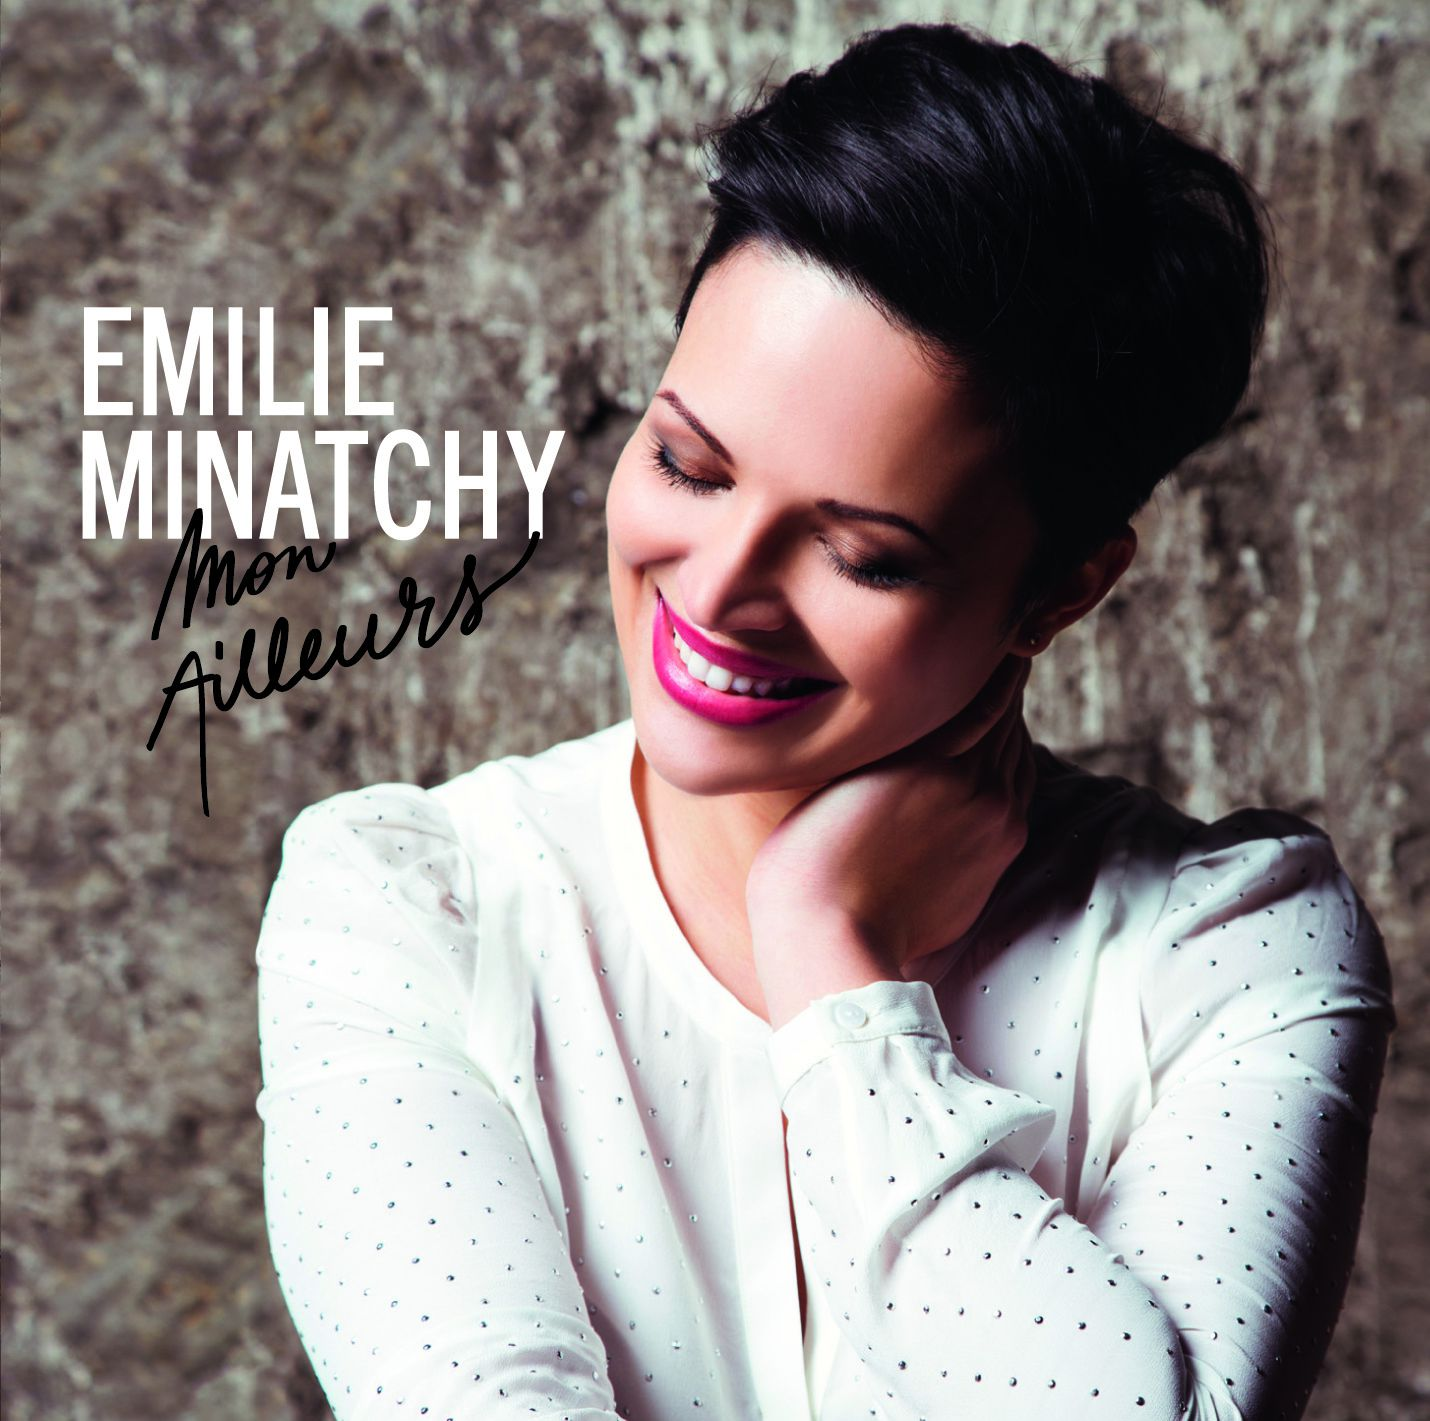 "Nouveau Single d'Emilie Minatchy ""Bye Bye"" disponible sur iTunes : http://bit.ly/15hZWh0."